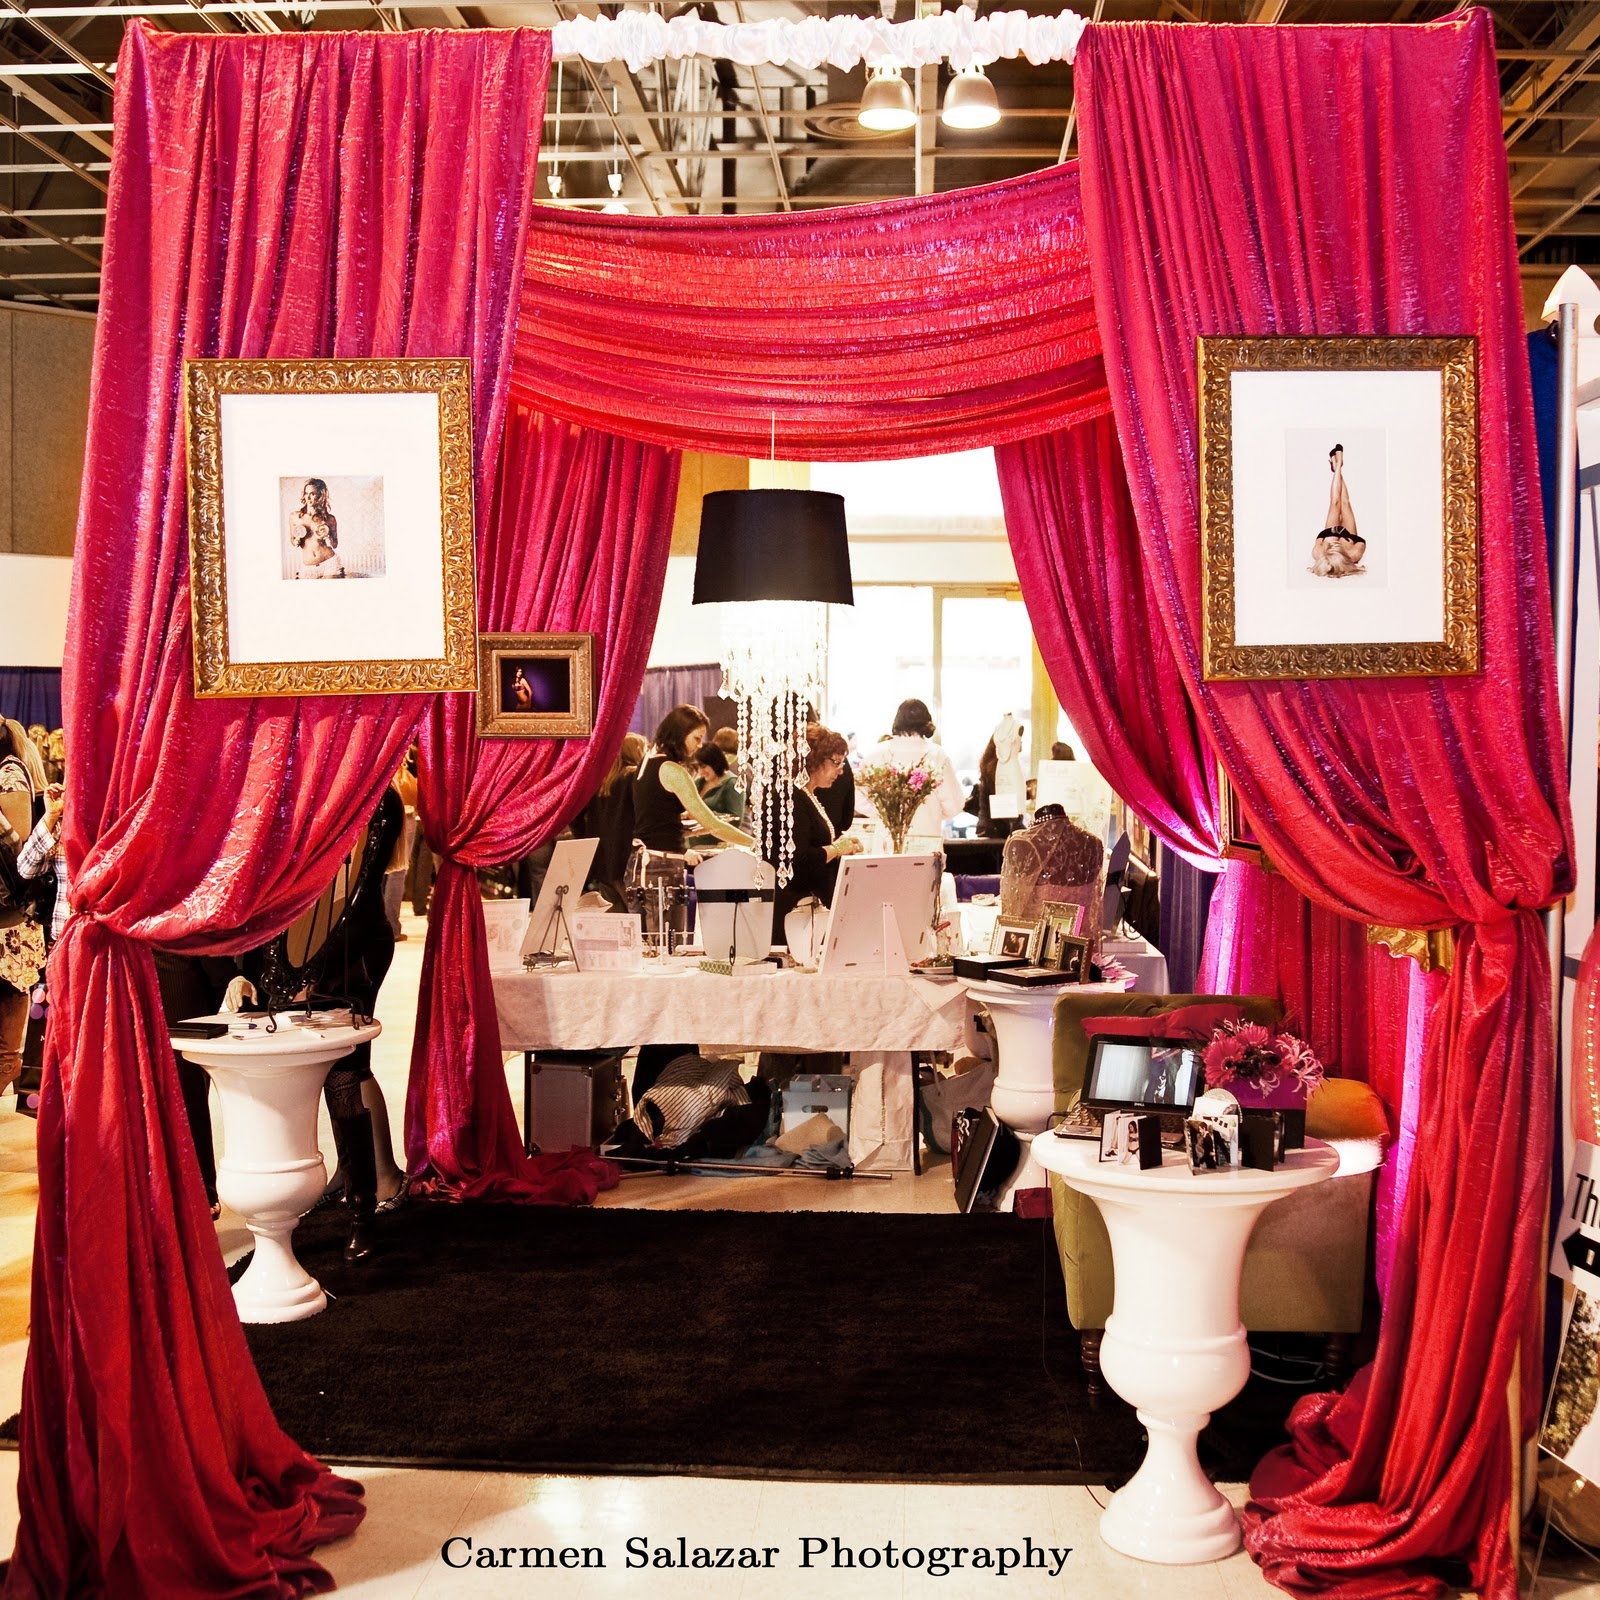 bridal booths booth event display designs studio designer expo fair shows vendor drape pipe draping curtains